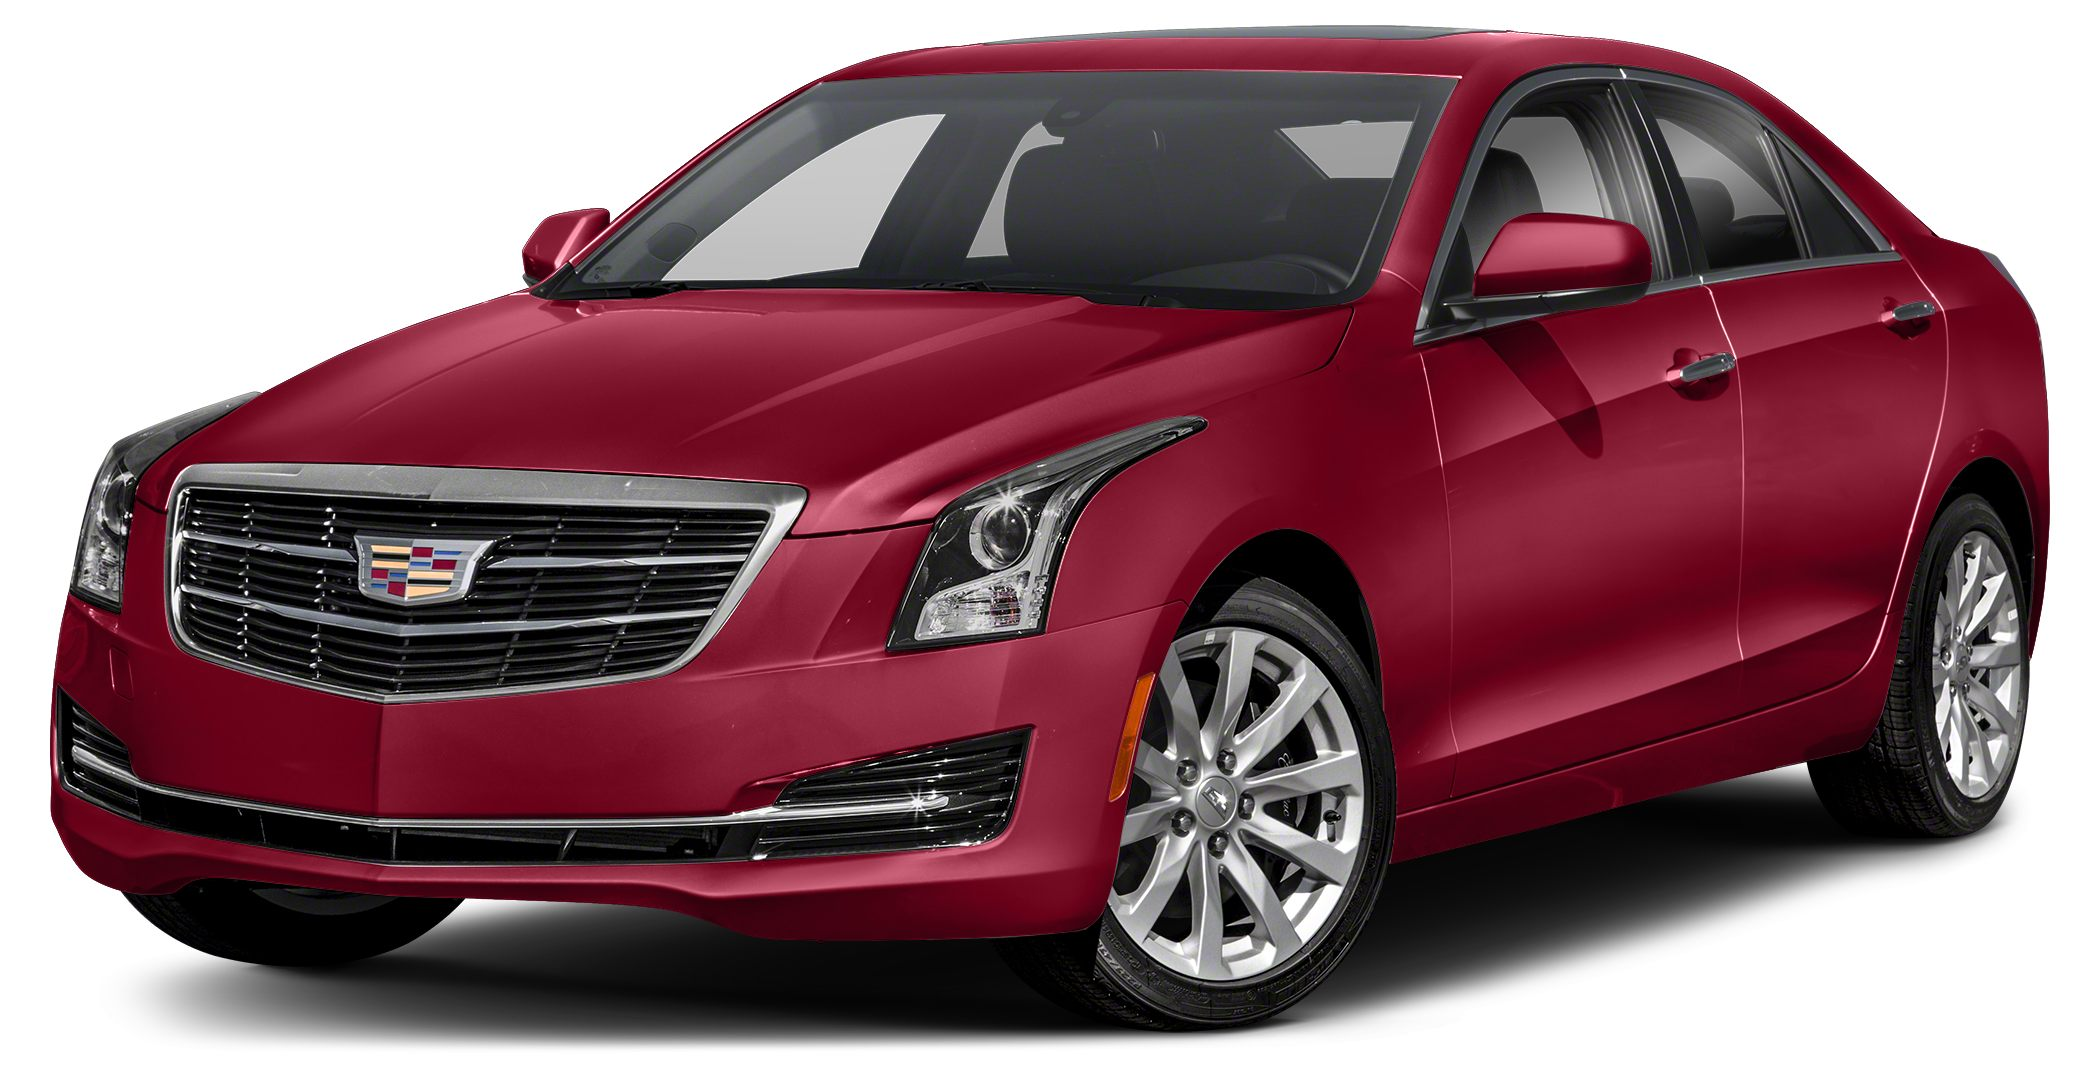 2018 Cadillac ATS 20 Turbo Only 25 Miles Boasts 31 Highway MPG and 22 City MPG This Cadillac AT